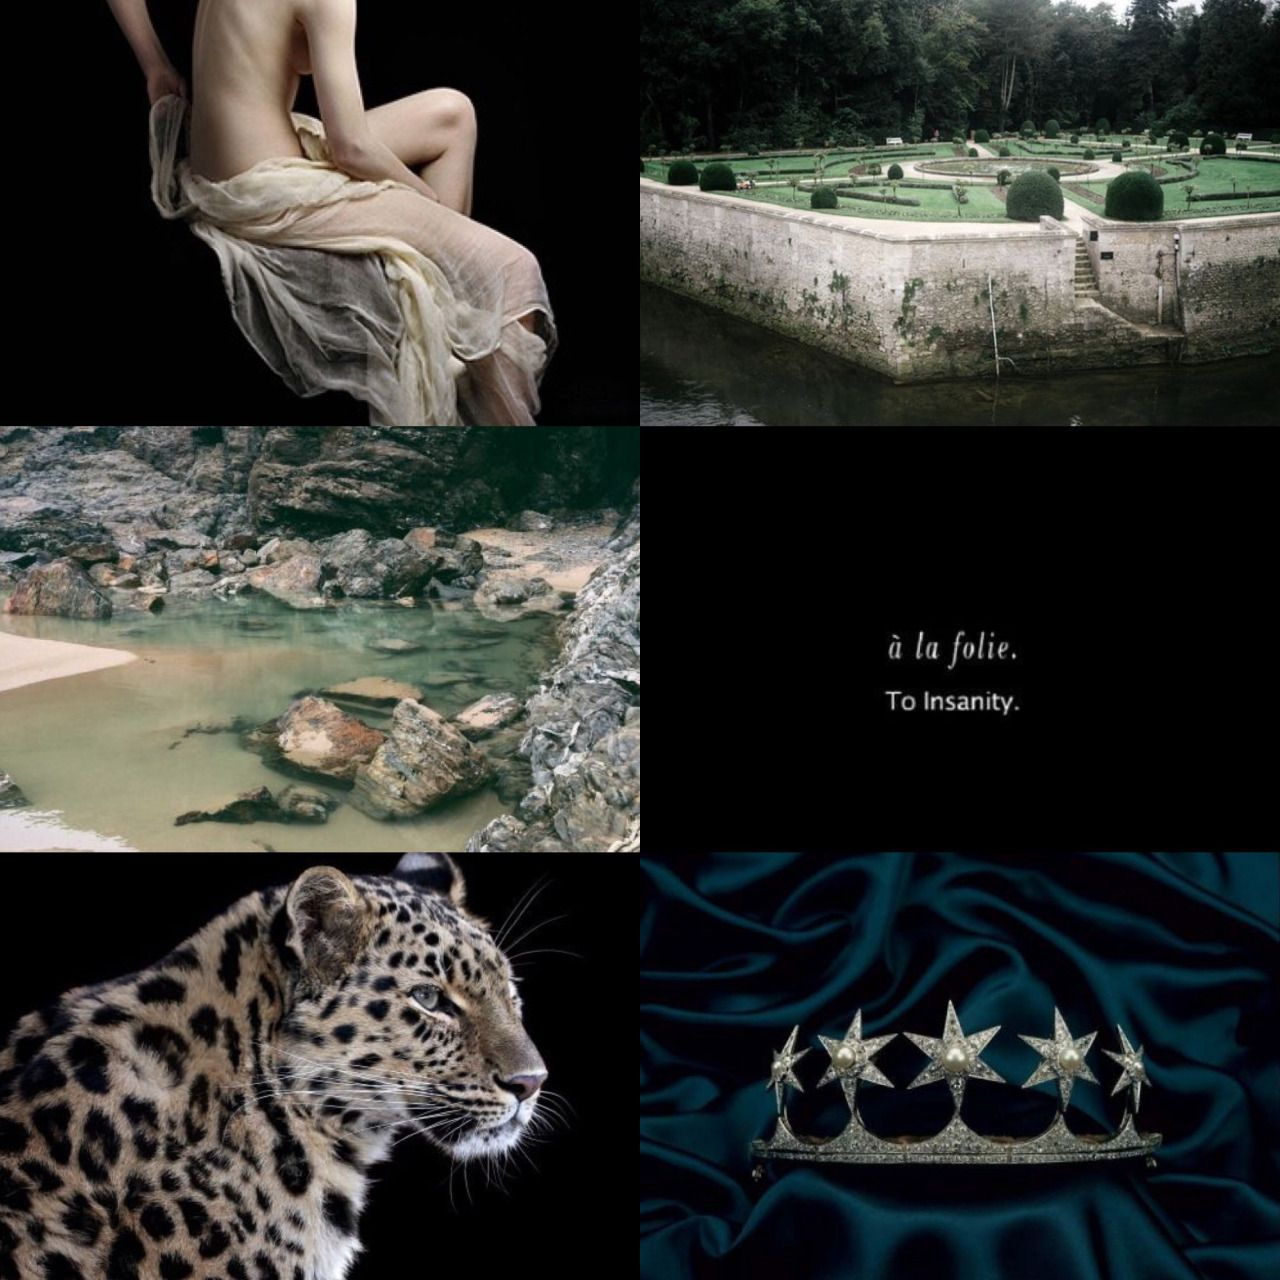 greek mythology – ariadne:daughter of minos and pasiphae, mistress of the labyrinth, lover of theseus, wife of dionysus, goddess